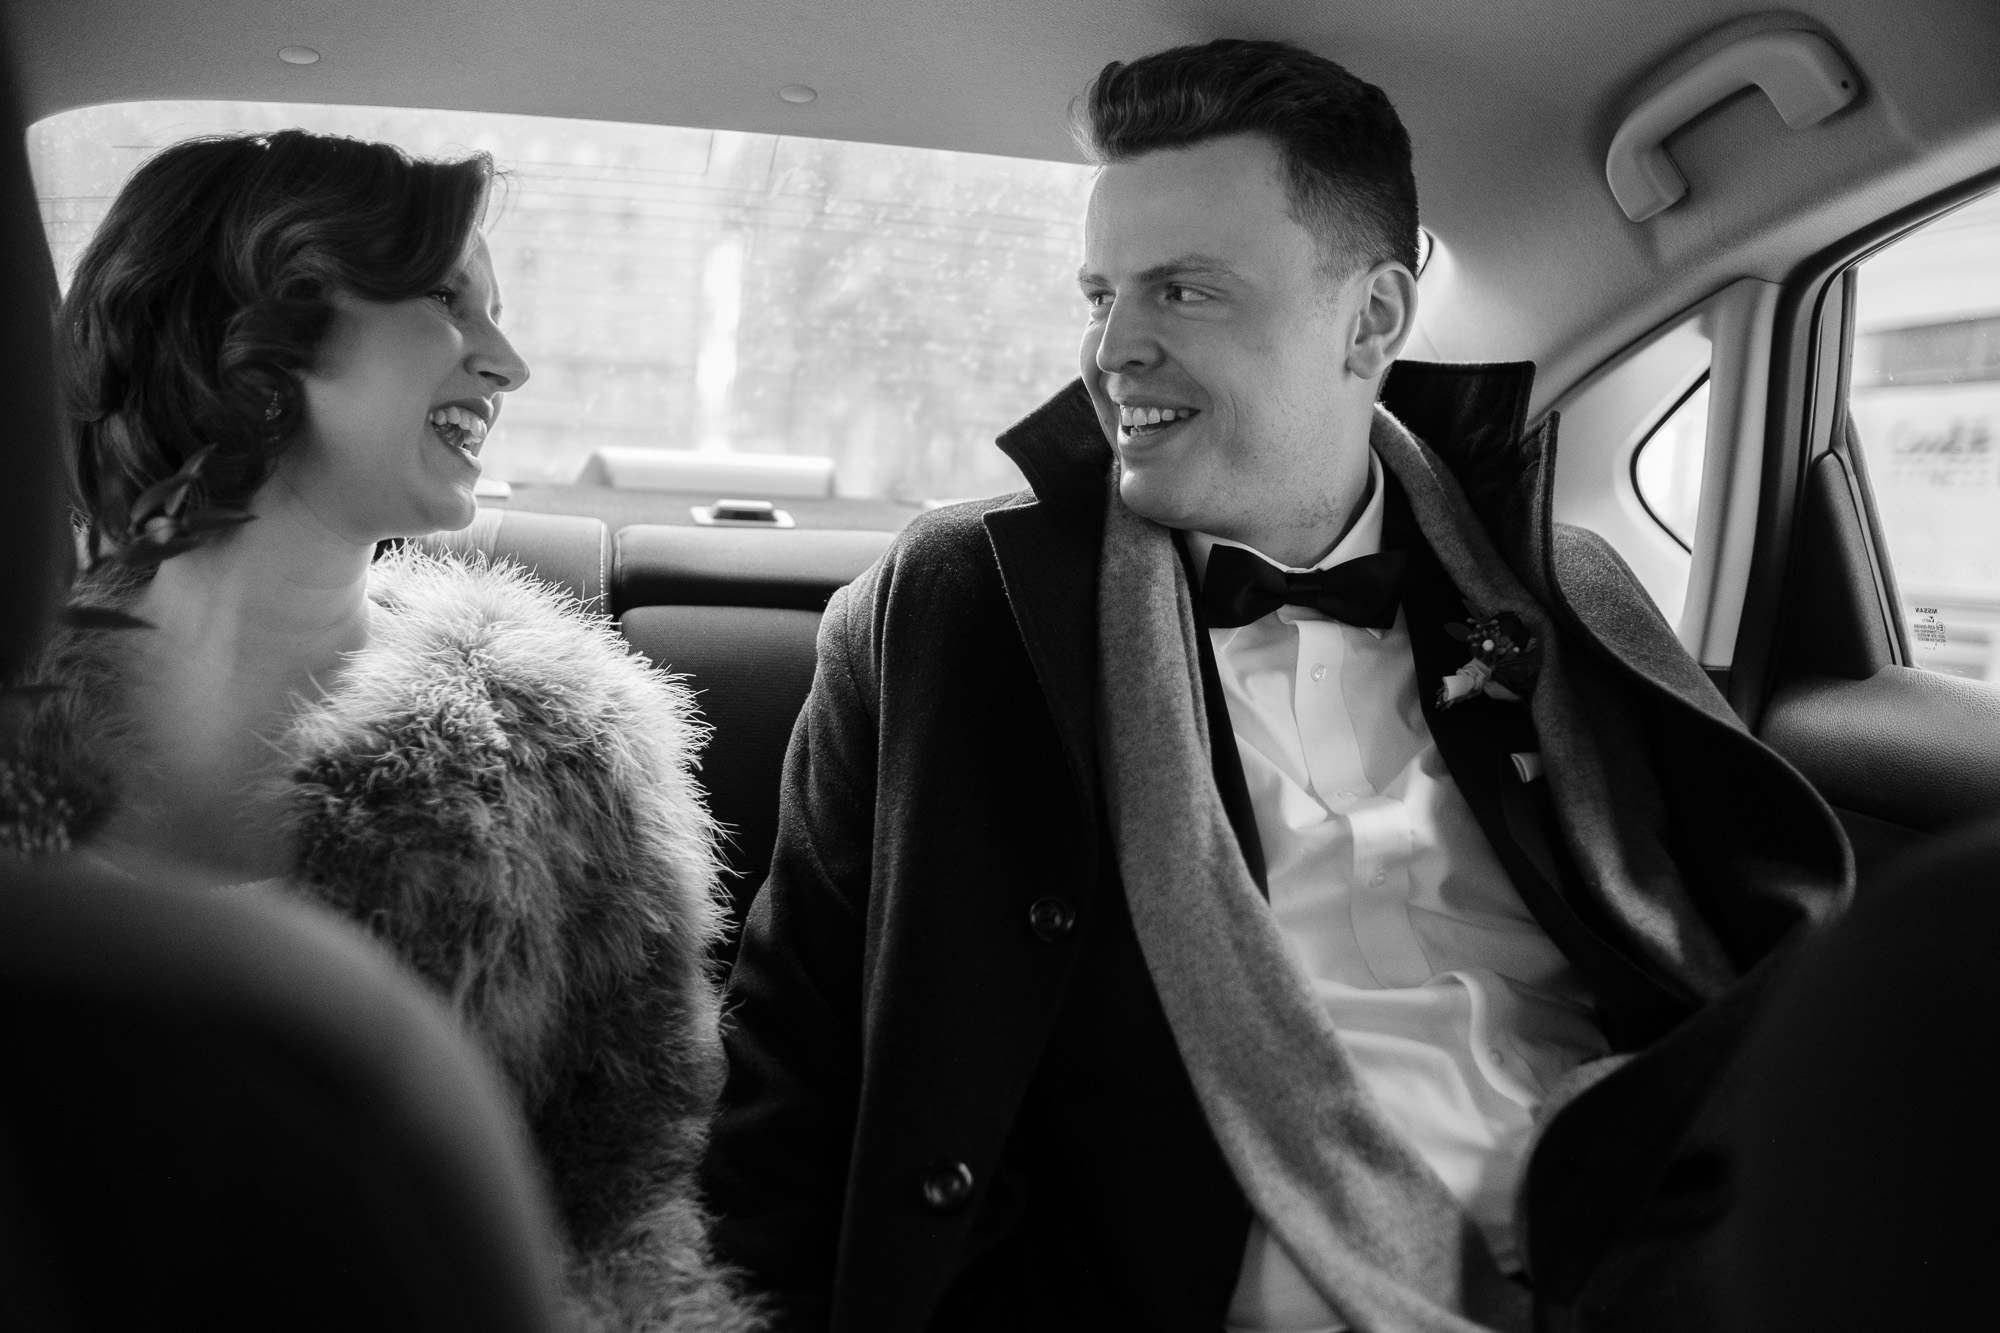 the bride and groom share a laugh in an Uber while traveling to through Toronto before their winter wedding at the Enoch Turner schoolhouse.